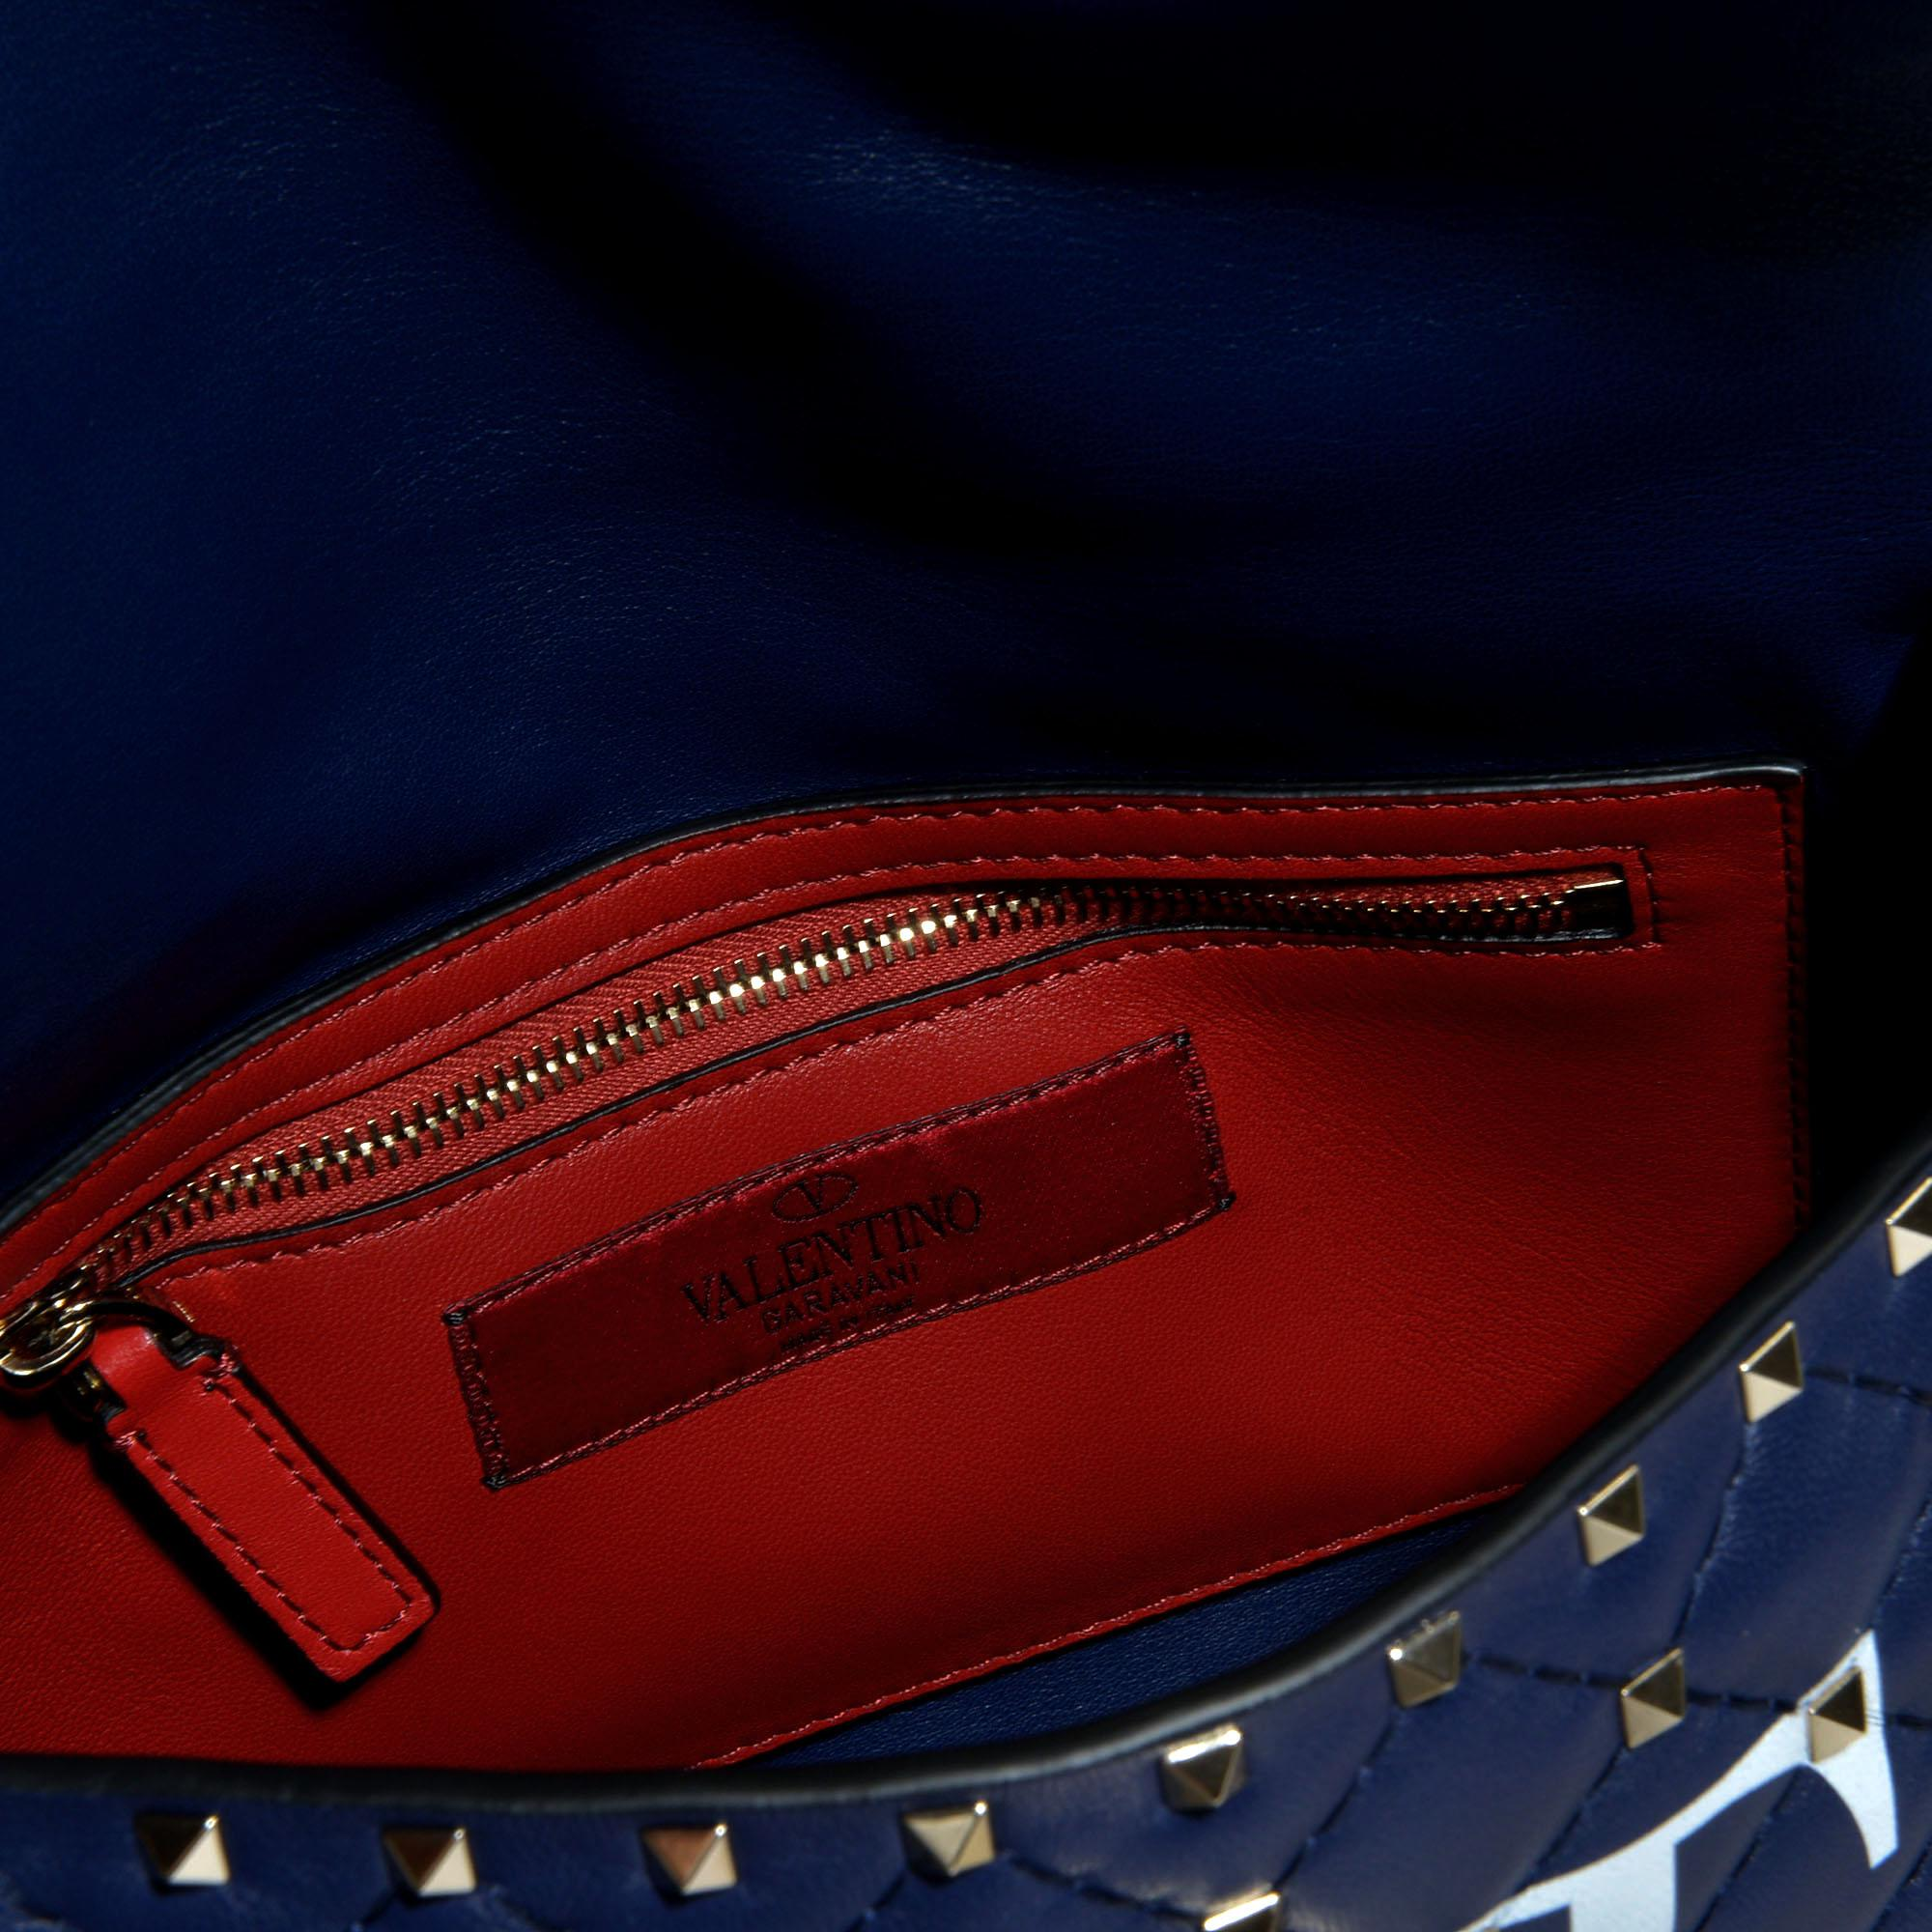 e80a4d49254ab valentino-Multicoloured-Vltn-Rockstud-Spike-Shoulder-Bag-In-Navy-And-White-Quilted-Calfskin.jpeg